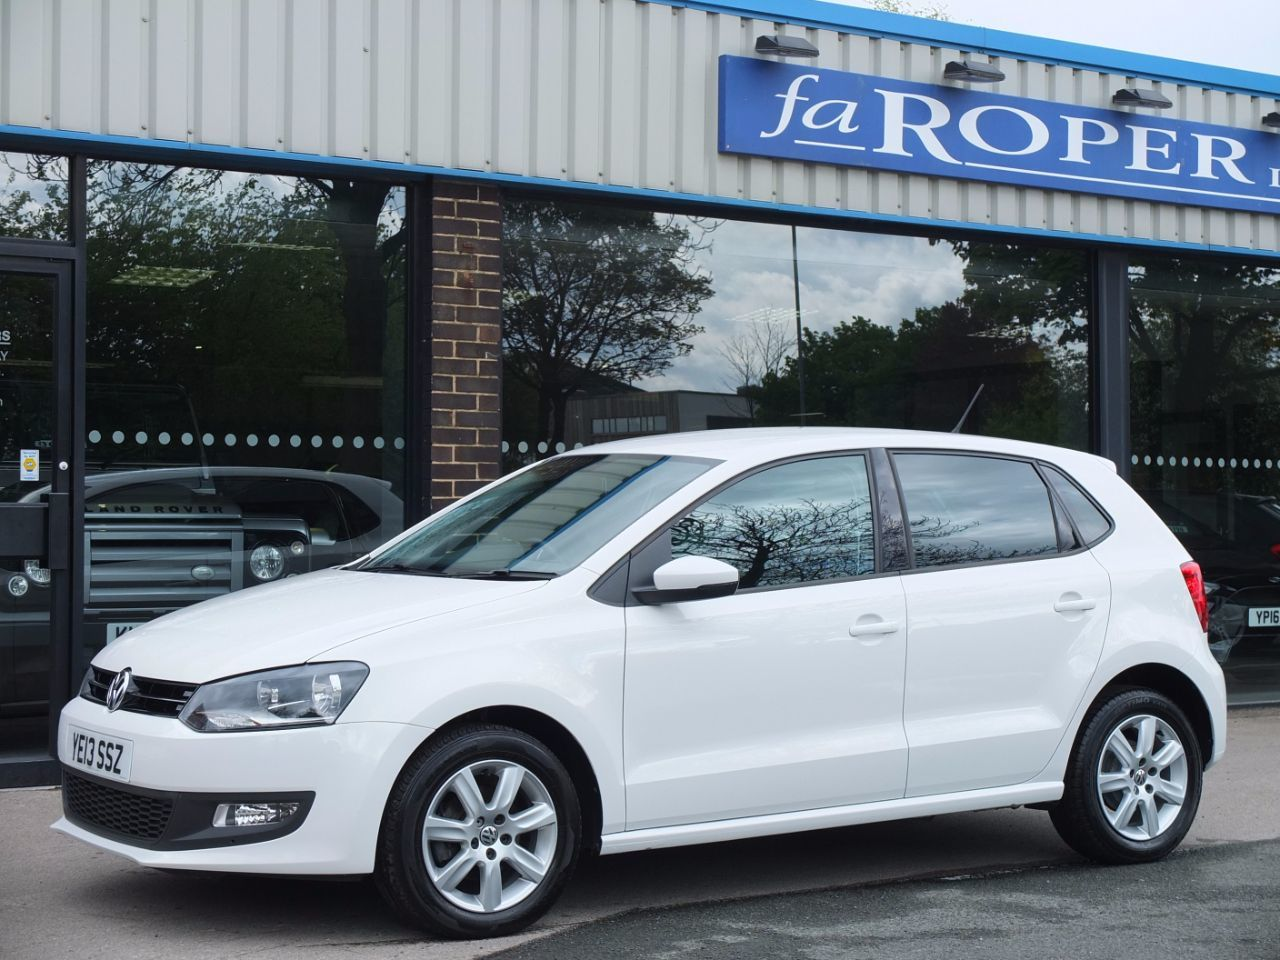 Volkswagen Polo 1.2 TDI Match Edition 5 door Hatchback Diesel Candy White